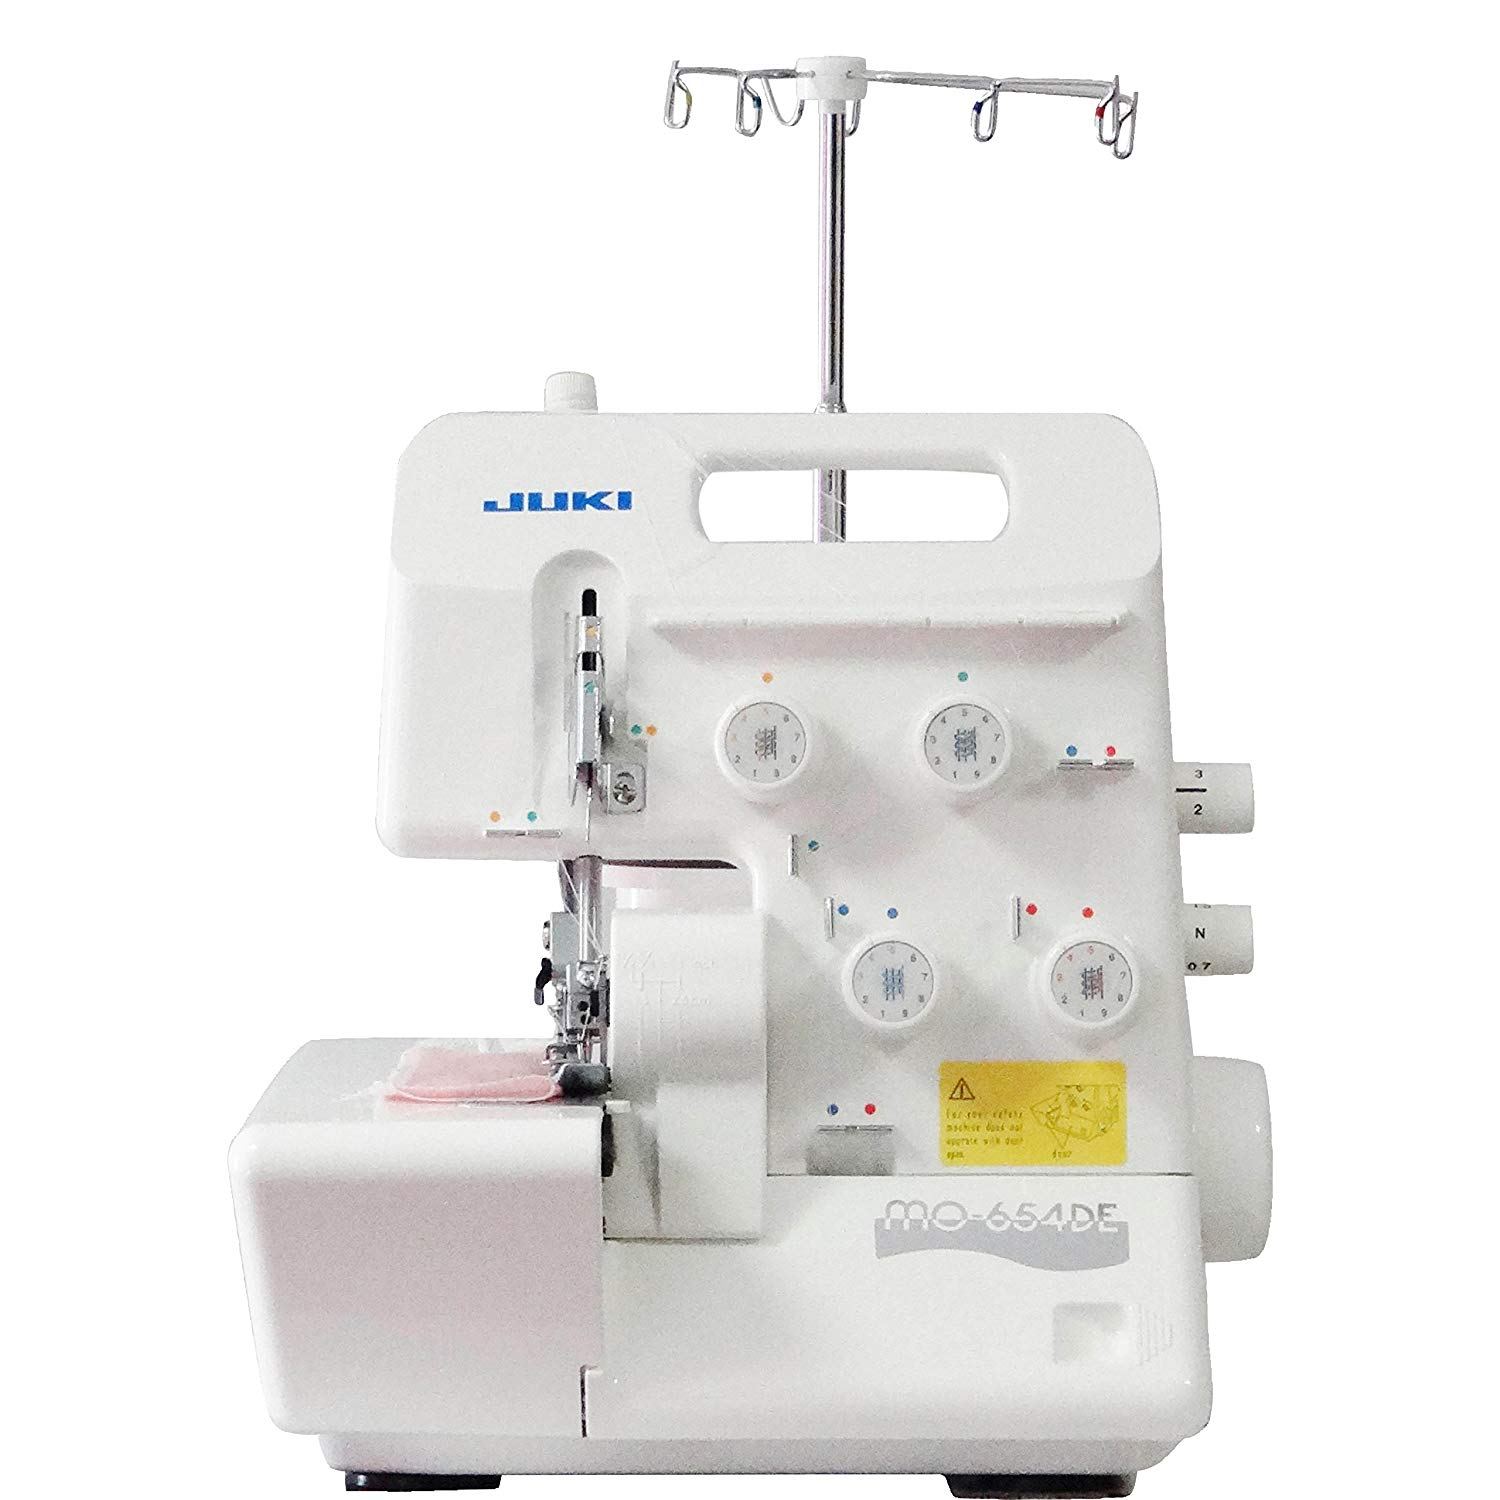 The Best Serger For 2018 9